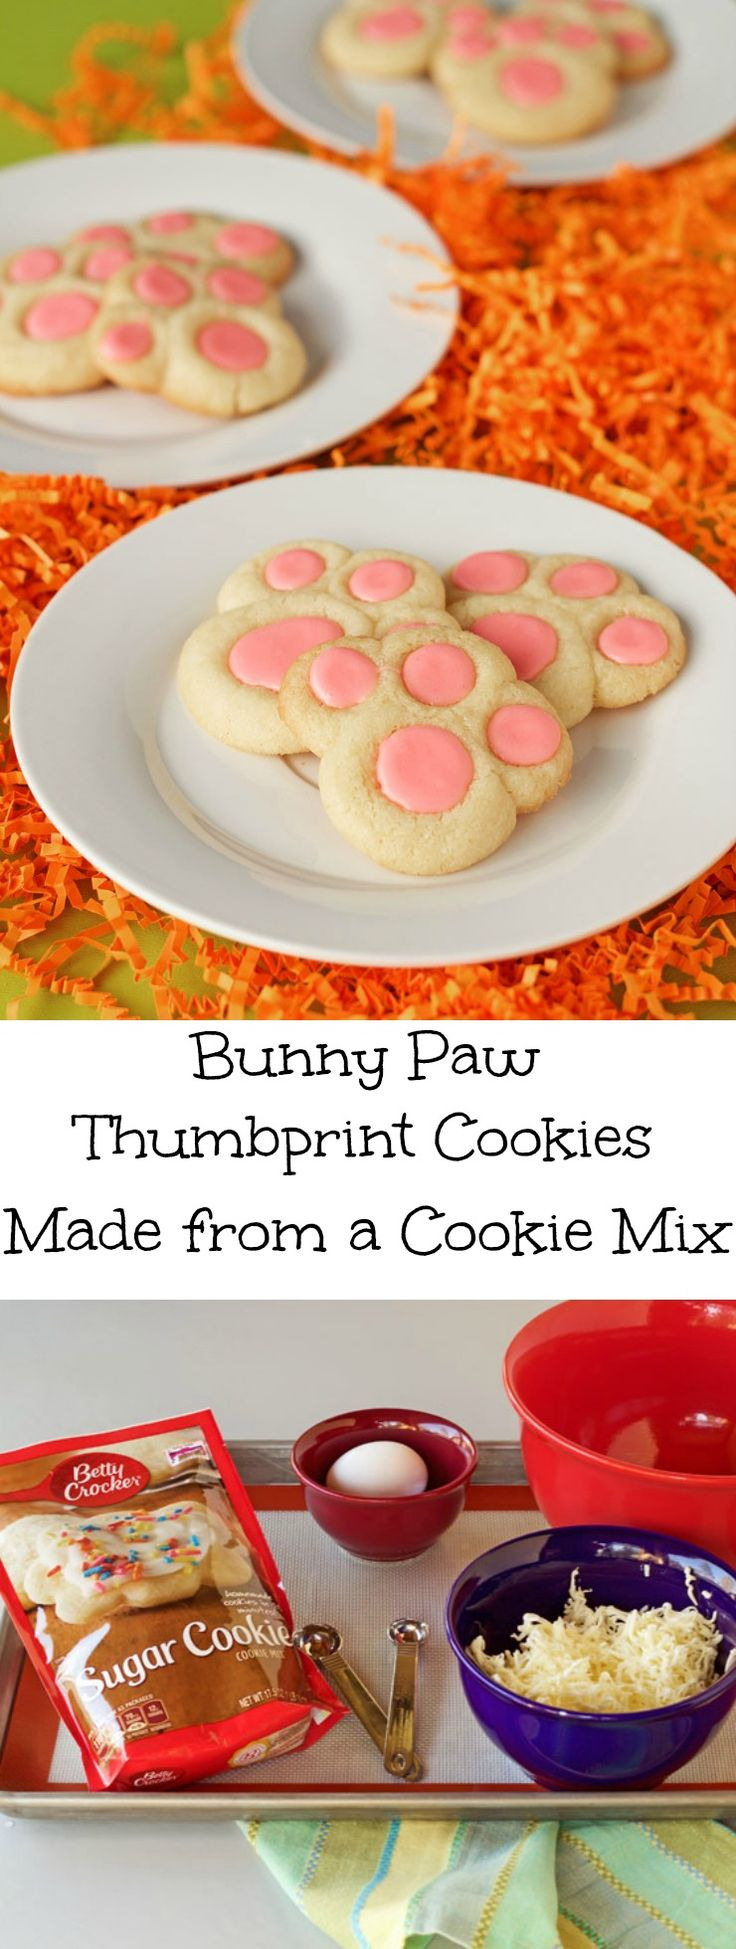 Bunny Paw Thumbprint Cookies Made from a Cookie Mix via www.thebearfootbaker.com